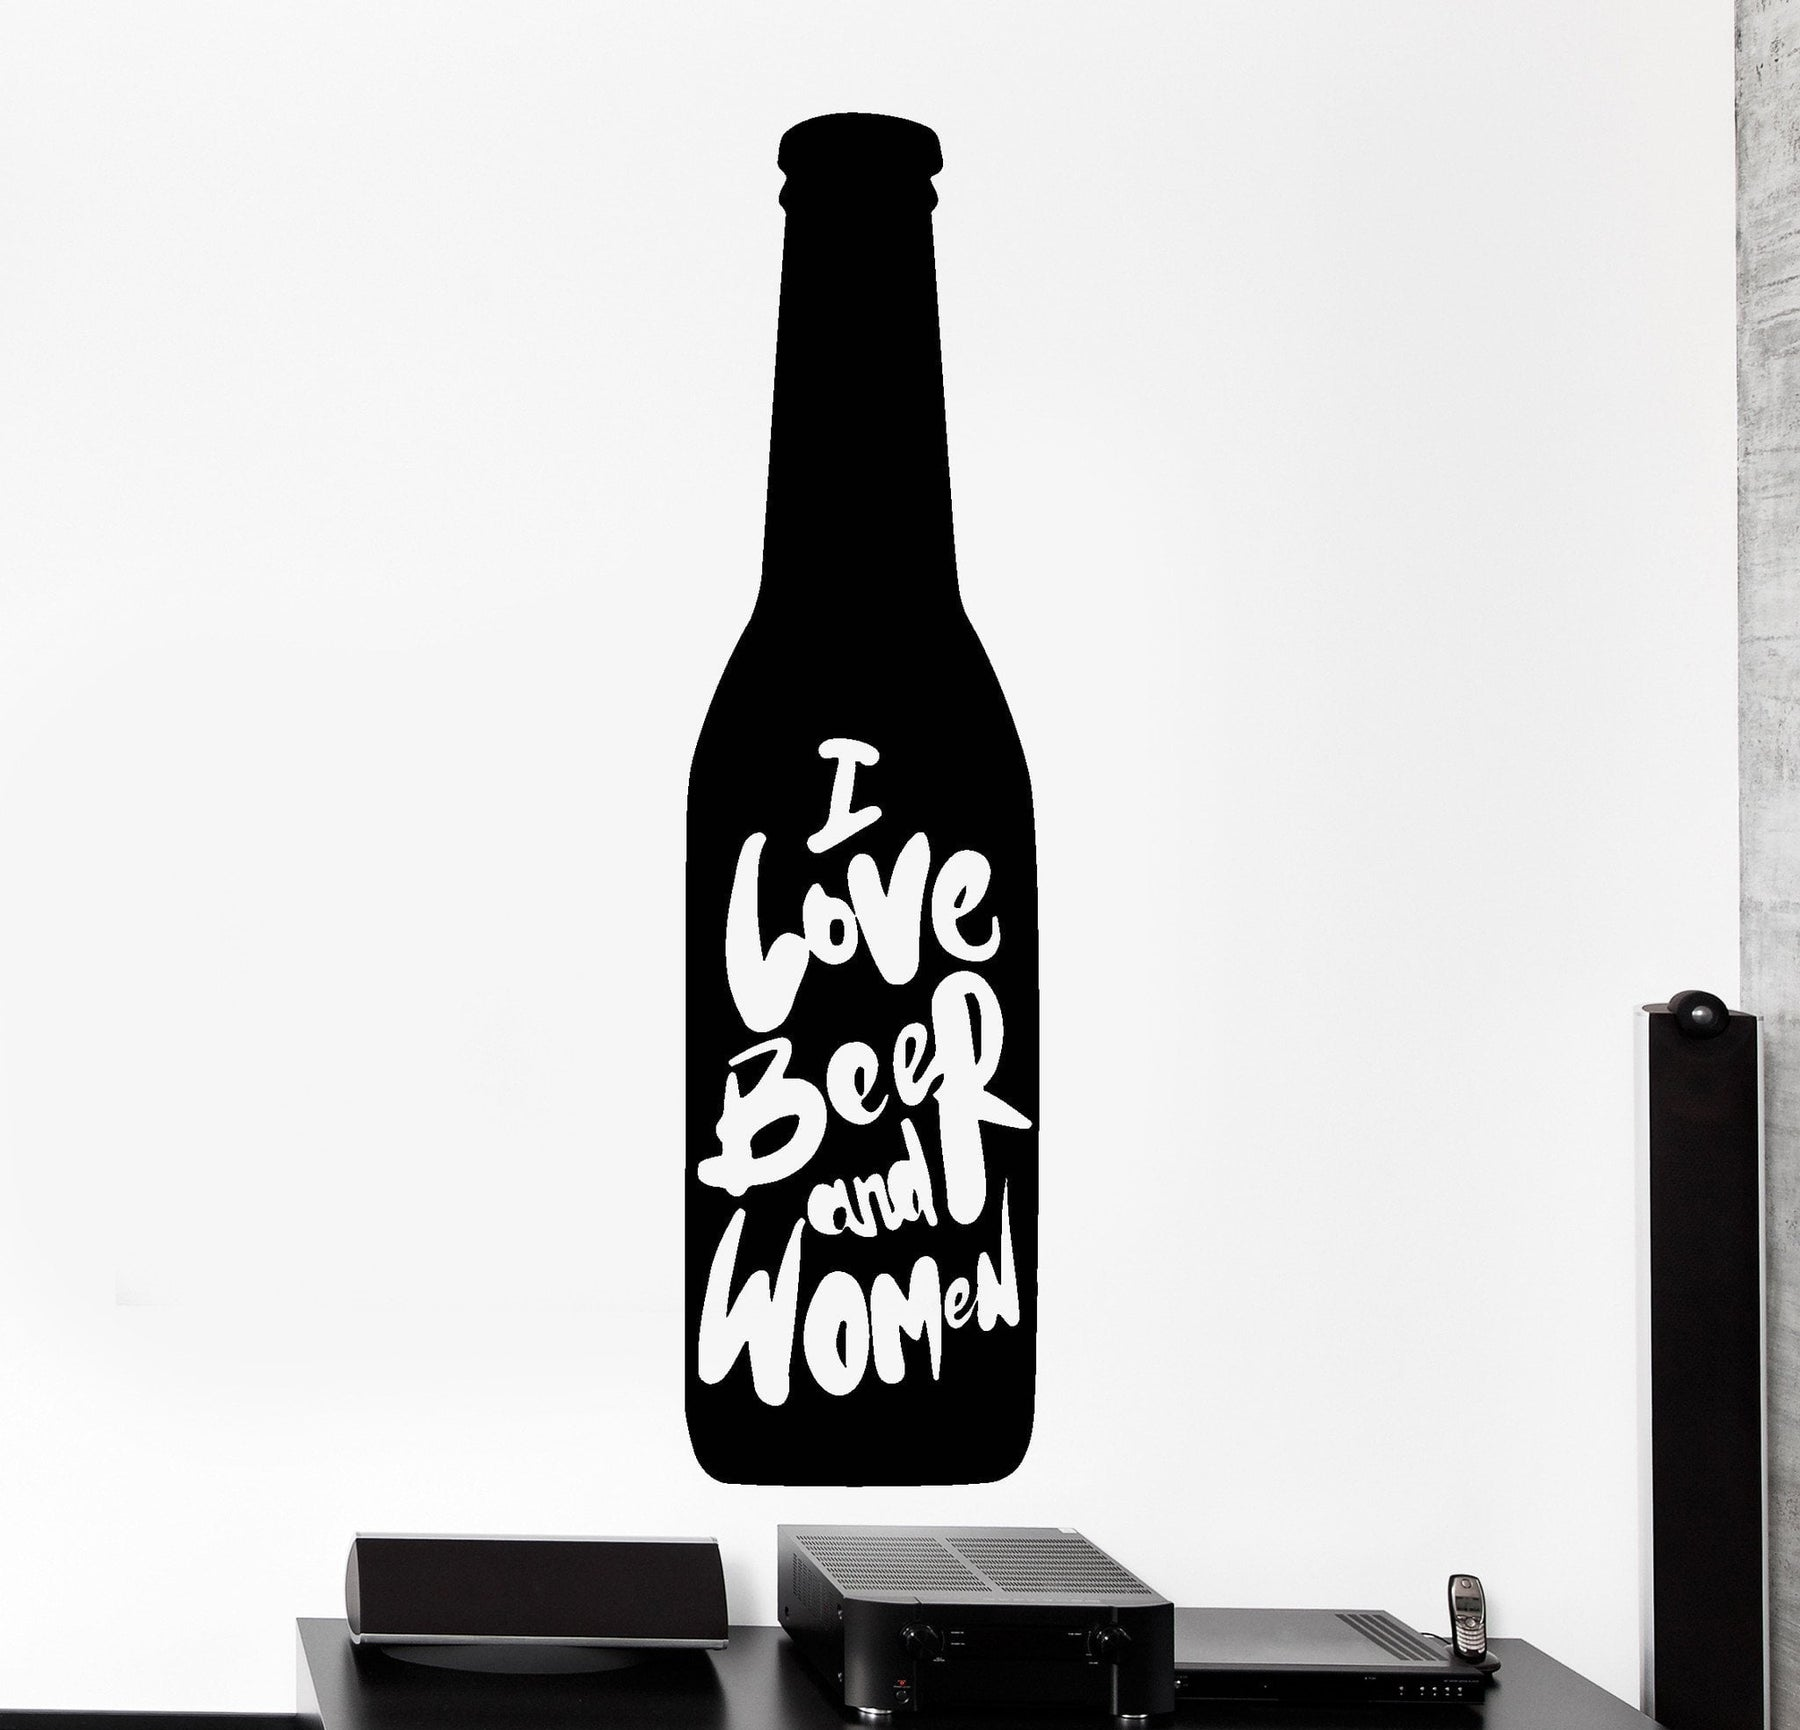 Vinyl Decal Wall Sticker Male motto I love beer and women Unique Gift (z4501)